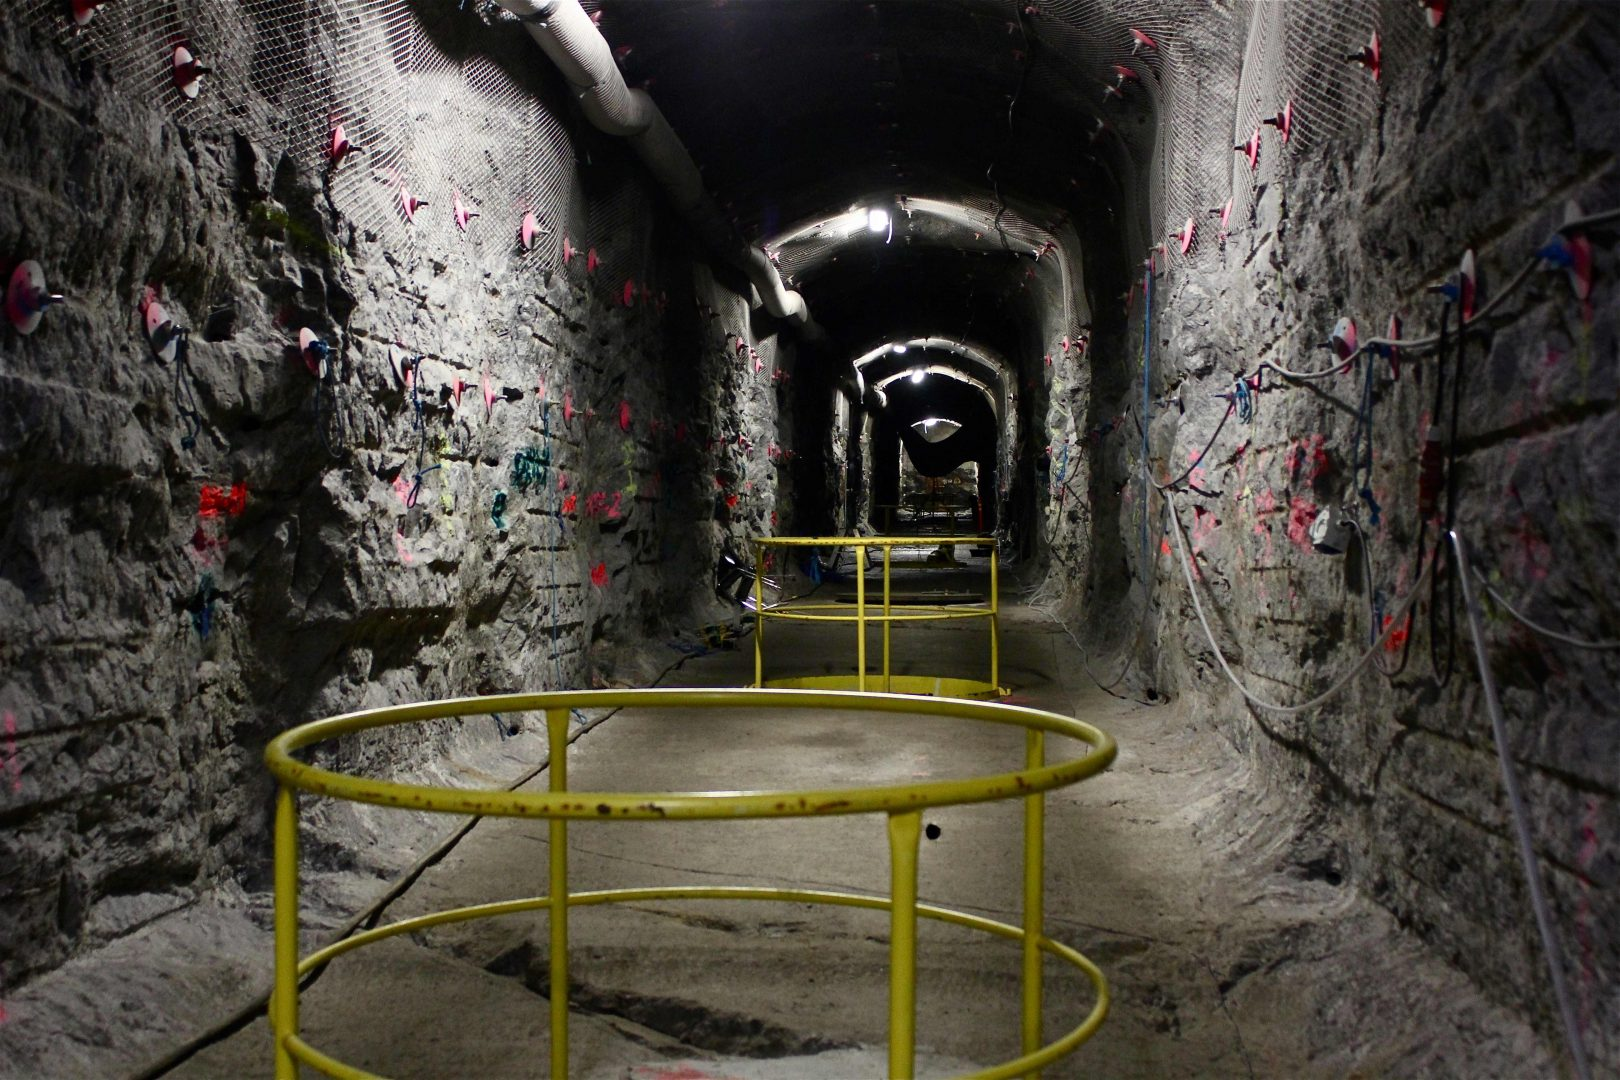 A view of the world's first underground repository for highly radioactive nuclear waste at the Olkiluoto nuclear power plant on April 28, 2016, on the island of Eurajoki, western Finland. Underneath the green island engineers are digging the world's first permanent repository to store highly radioactive nuclear waste for the next hundred thousand years. / AFP PHOTO / Sam Kingsley